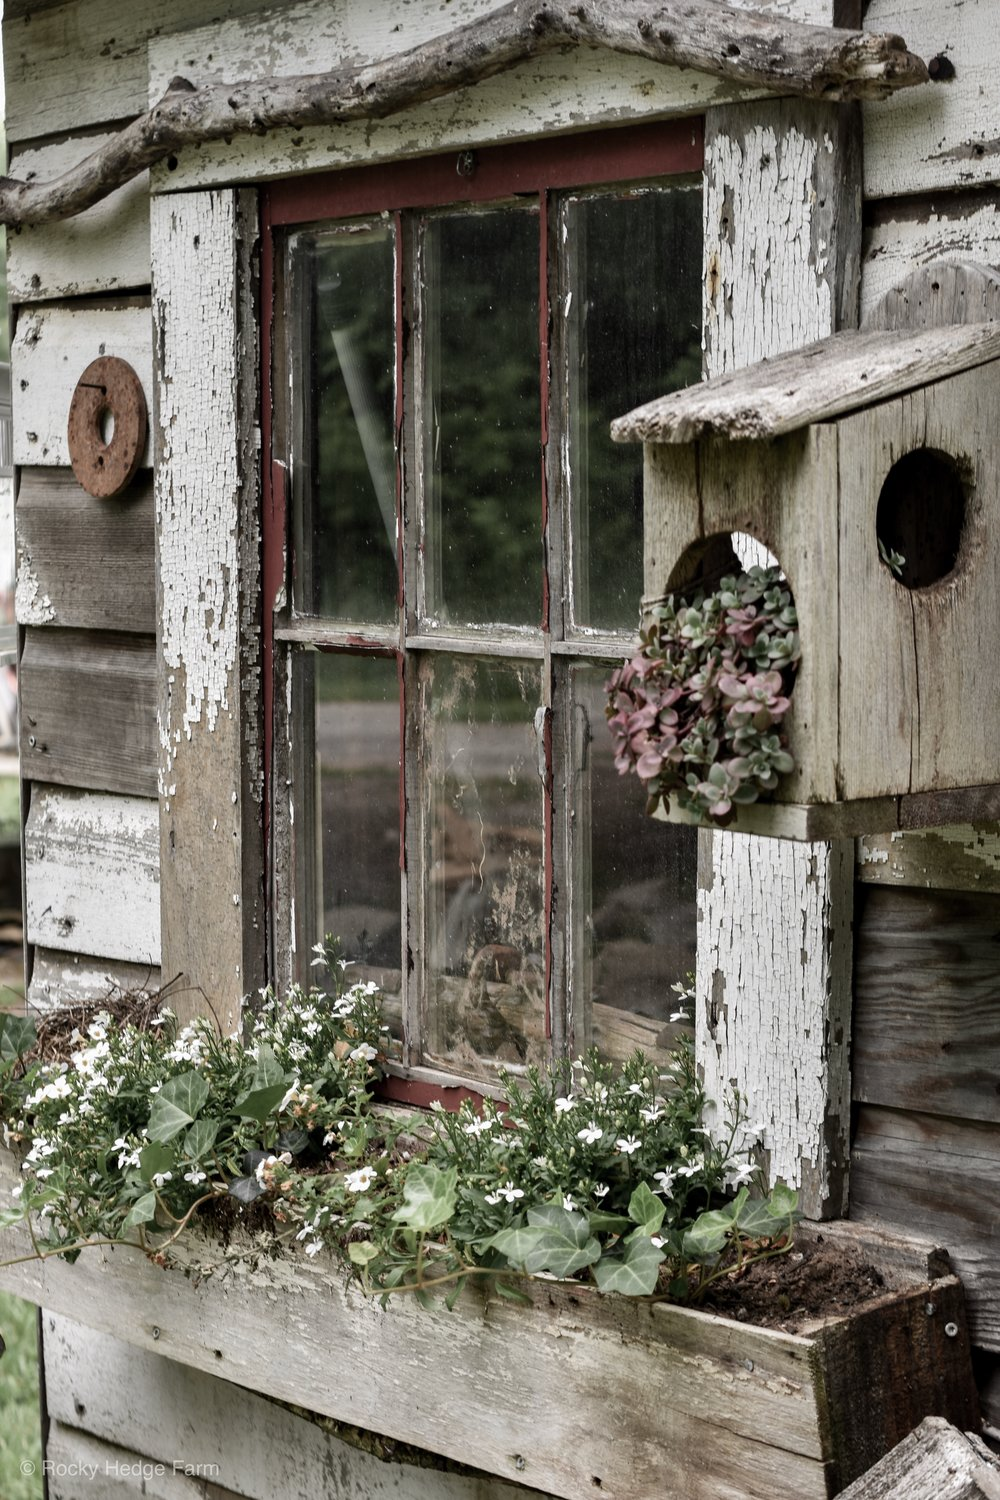 Small rustic garden shed decor with wooden window box | Rocky Hedge Farm